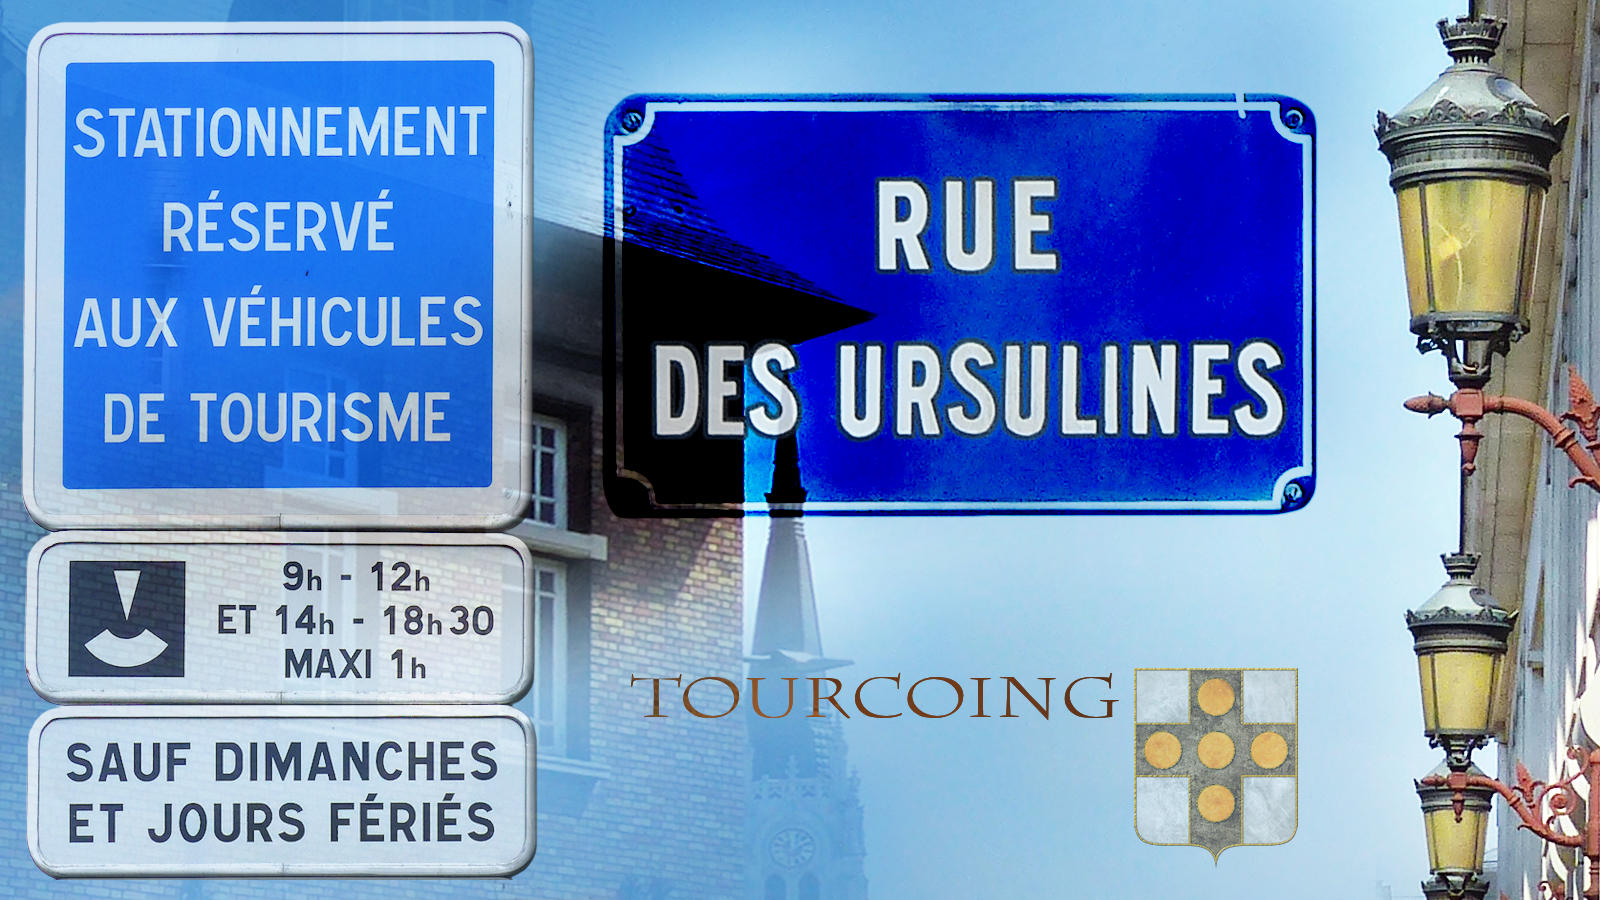 Rues Tourcoing - Stationnement Ursulines